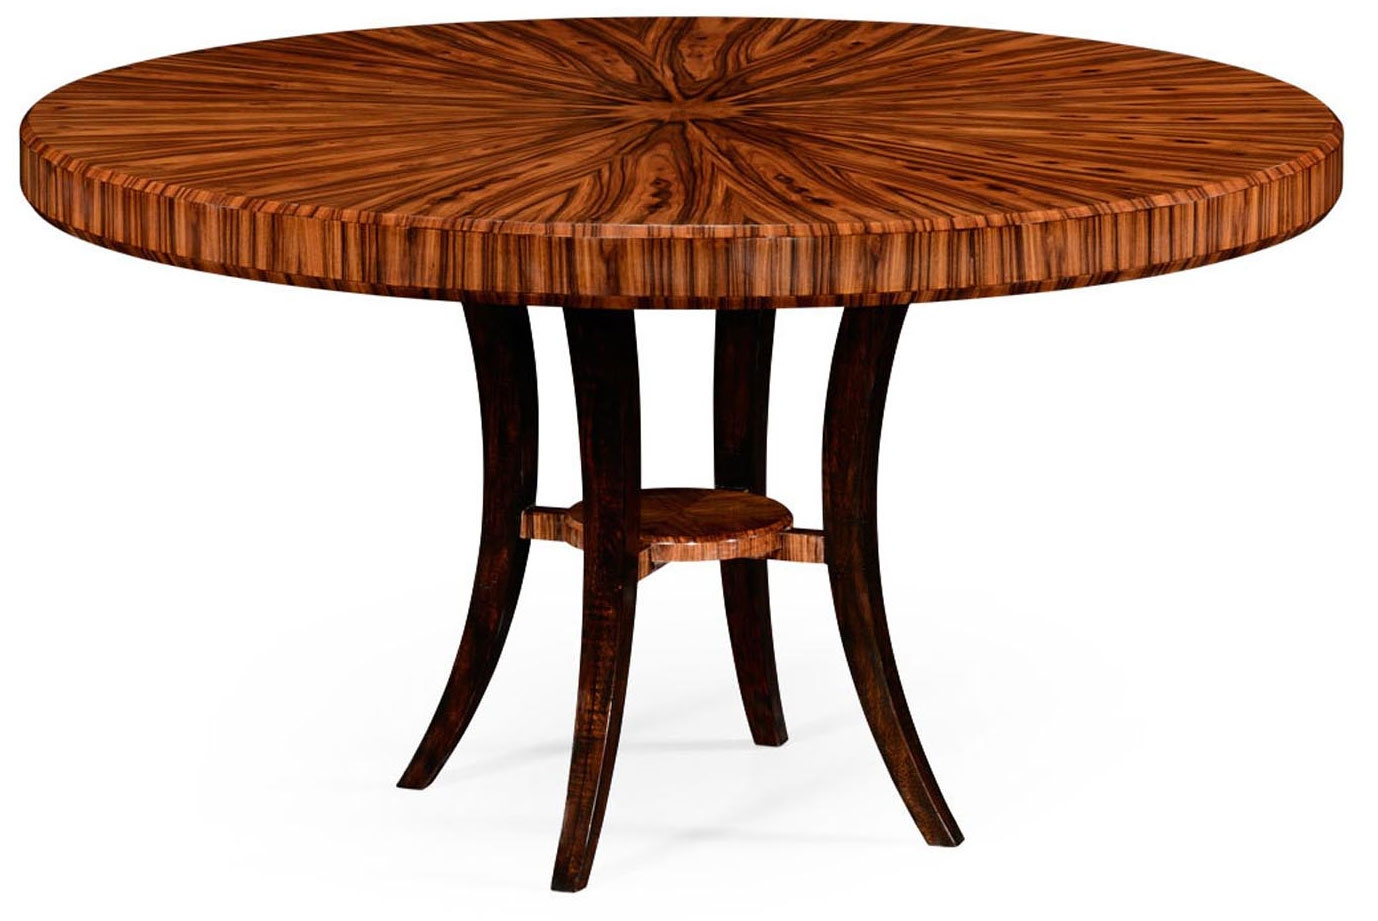 Art deco style round dining table for Stylish round dining table